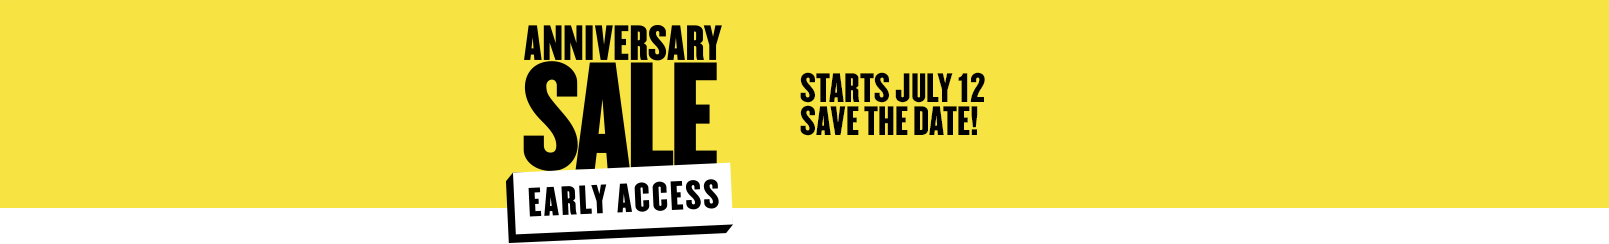 Anniversary Sale Early Access starts July 12.